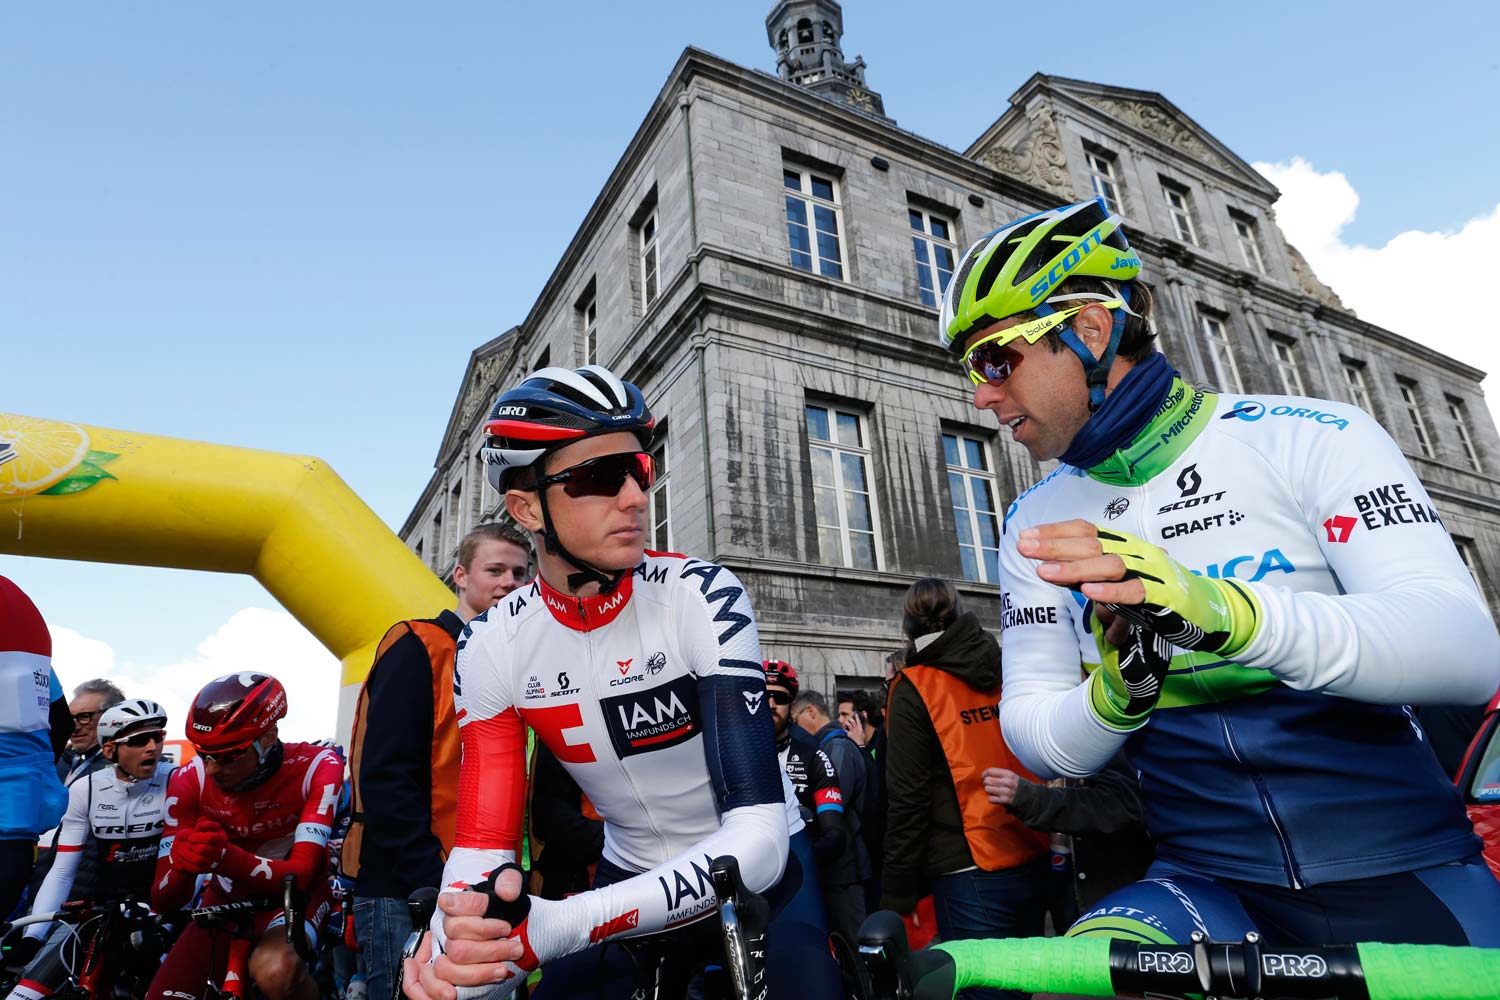 David Tanner and Michael Matthews at the start of the 51st edition of the Amstel Gold Race. Photo: Yuzuru Sunada